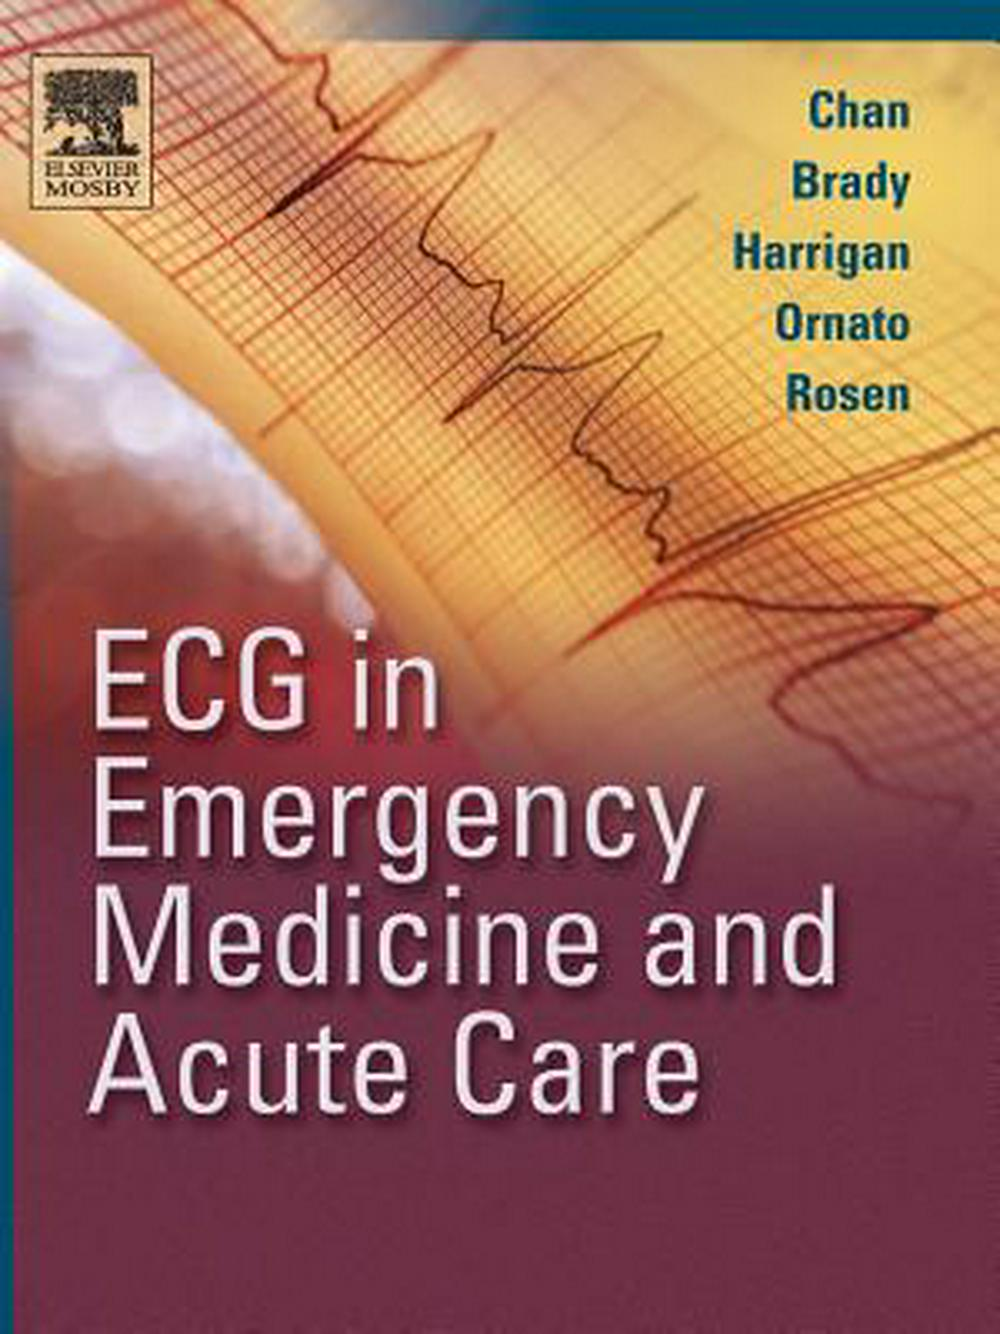 ECG in Emergency Medicine and Acute Care by Theodore C. Chan, ISBN: 9780323018111